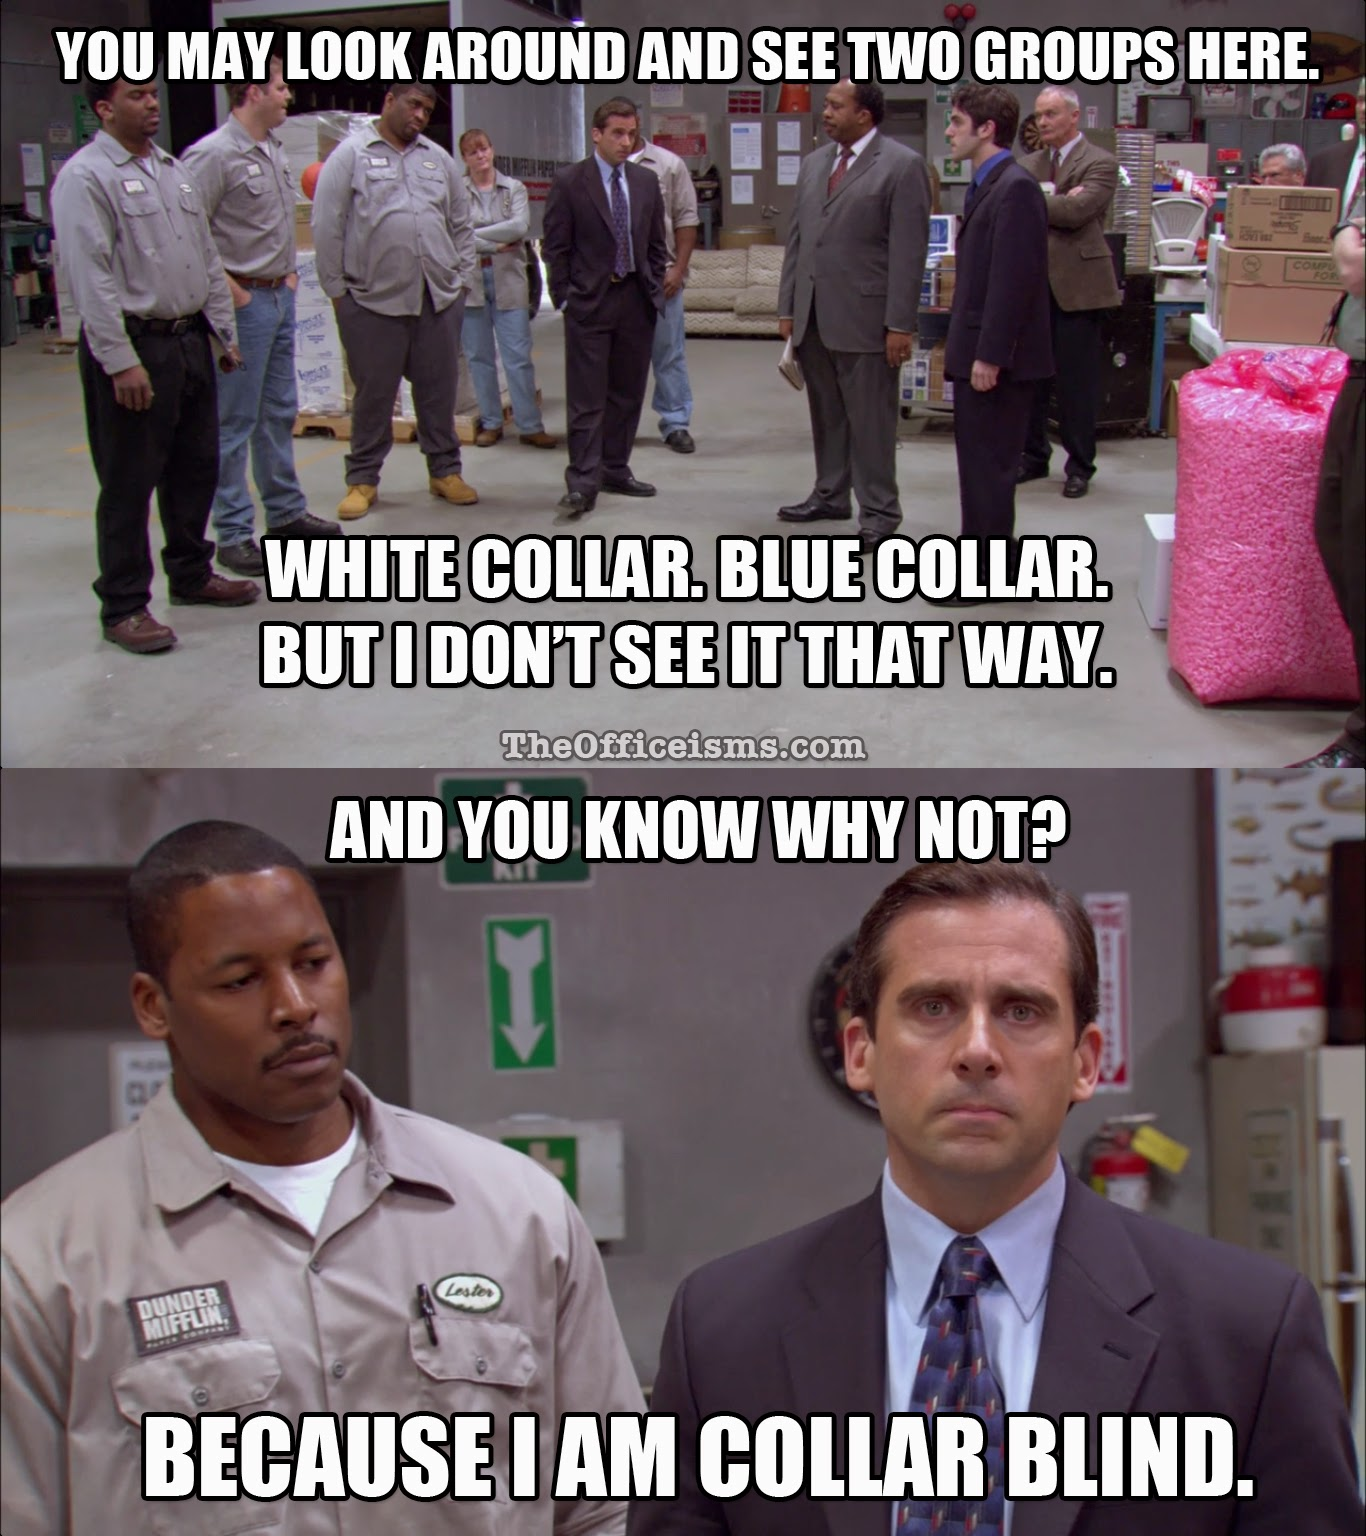 Collar Blind, The Office